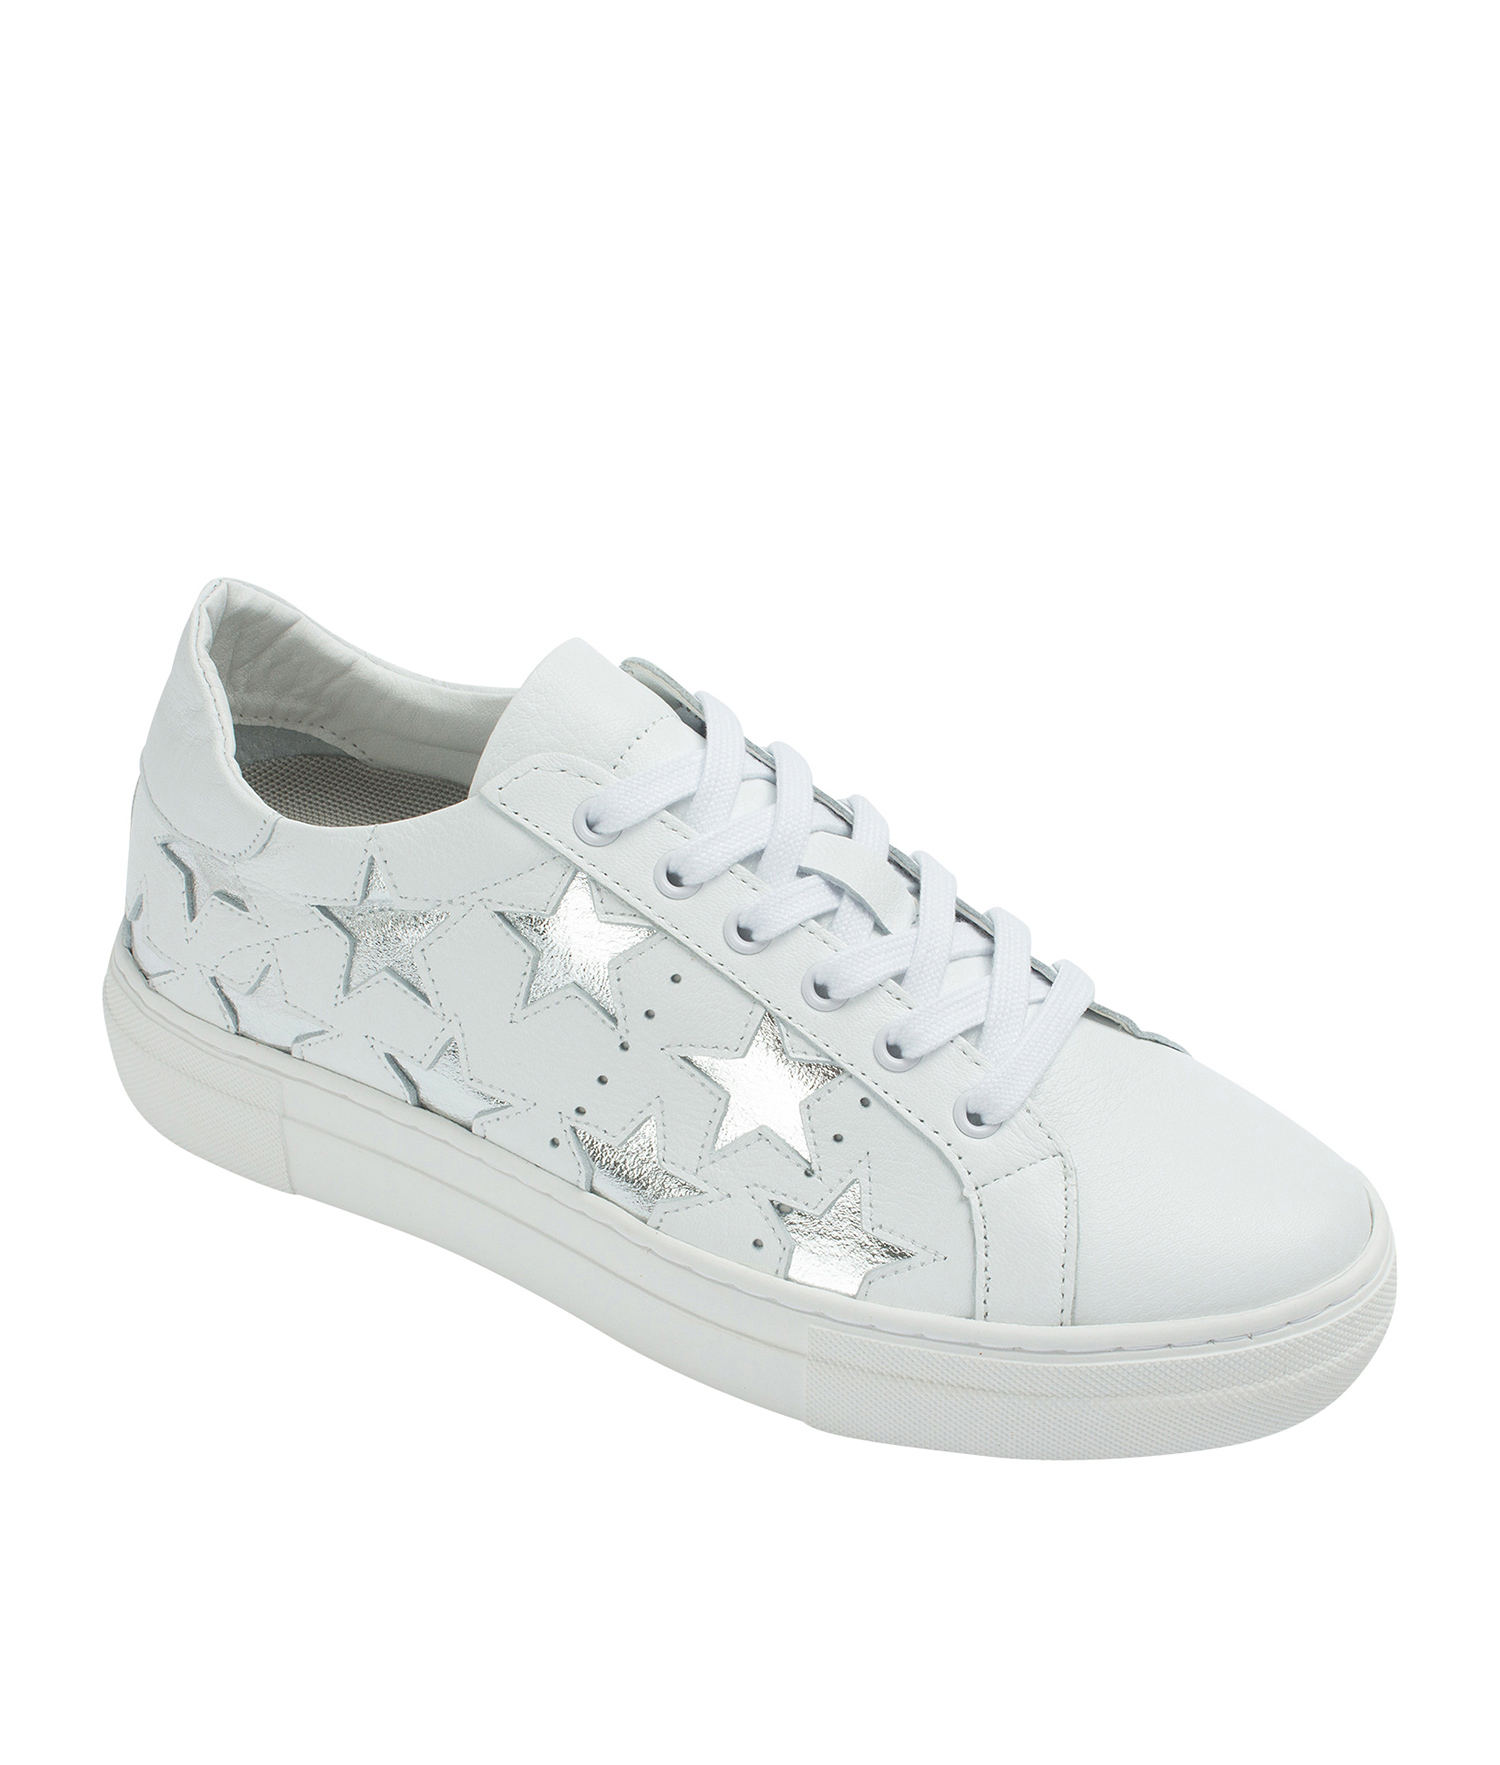 2d0f7998be7 Star Cutout Sneakers